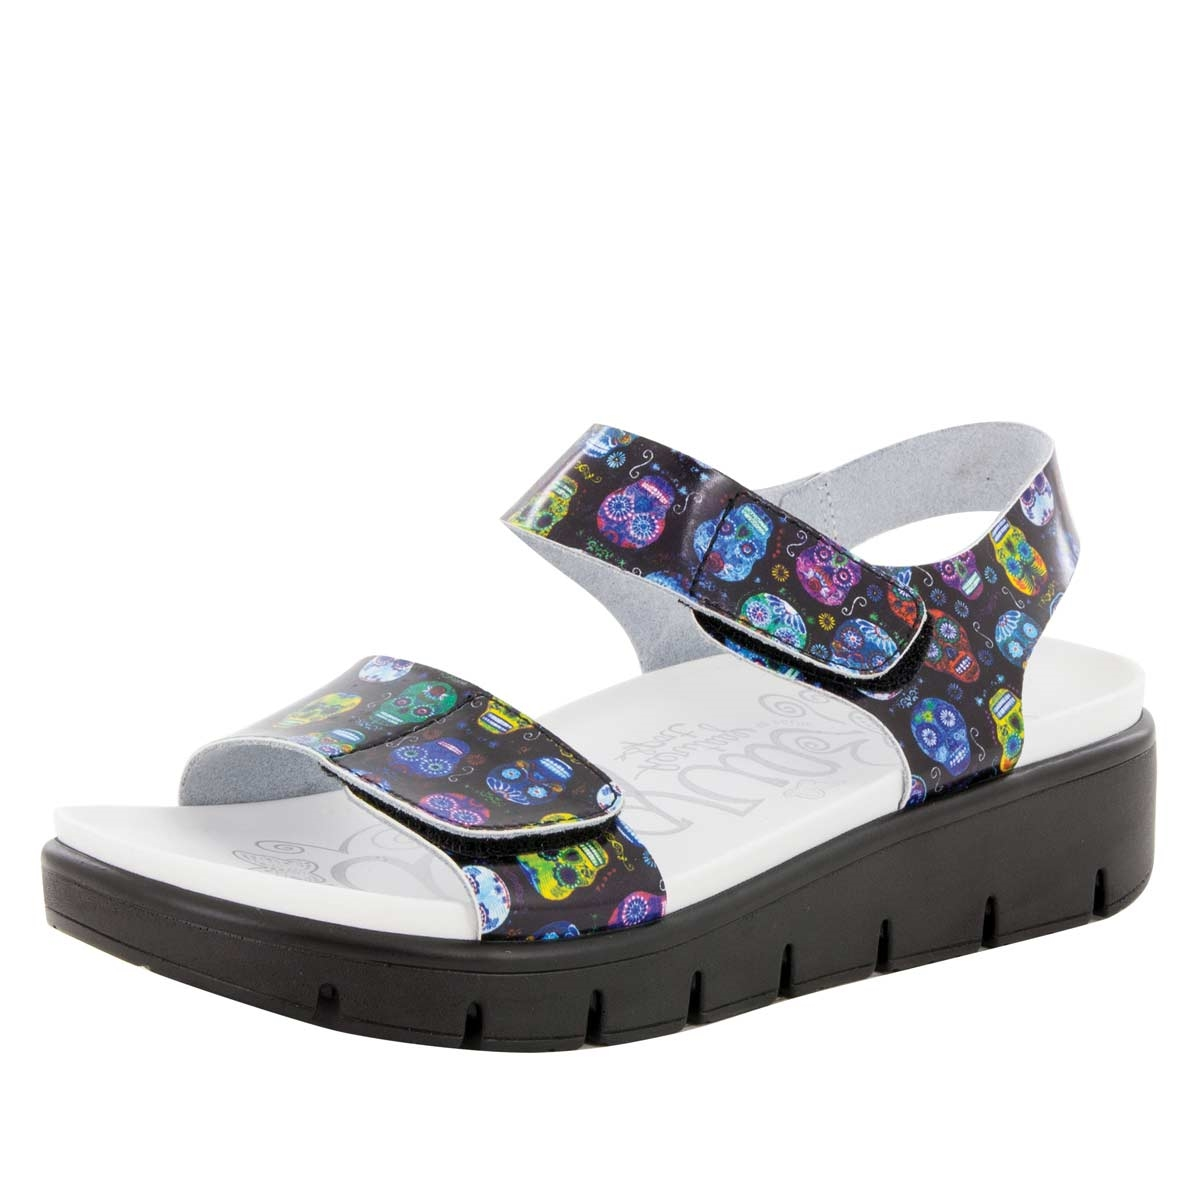 Playa Sugar Skulls Sandal Alegria Shoes Sendal Flat Lisa Purple